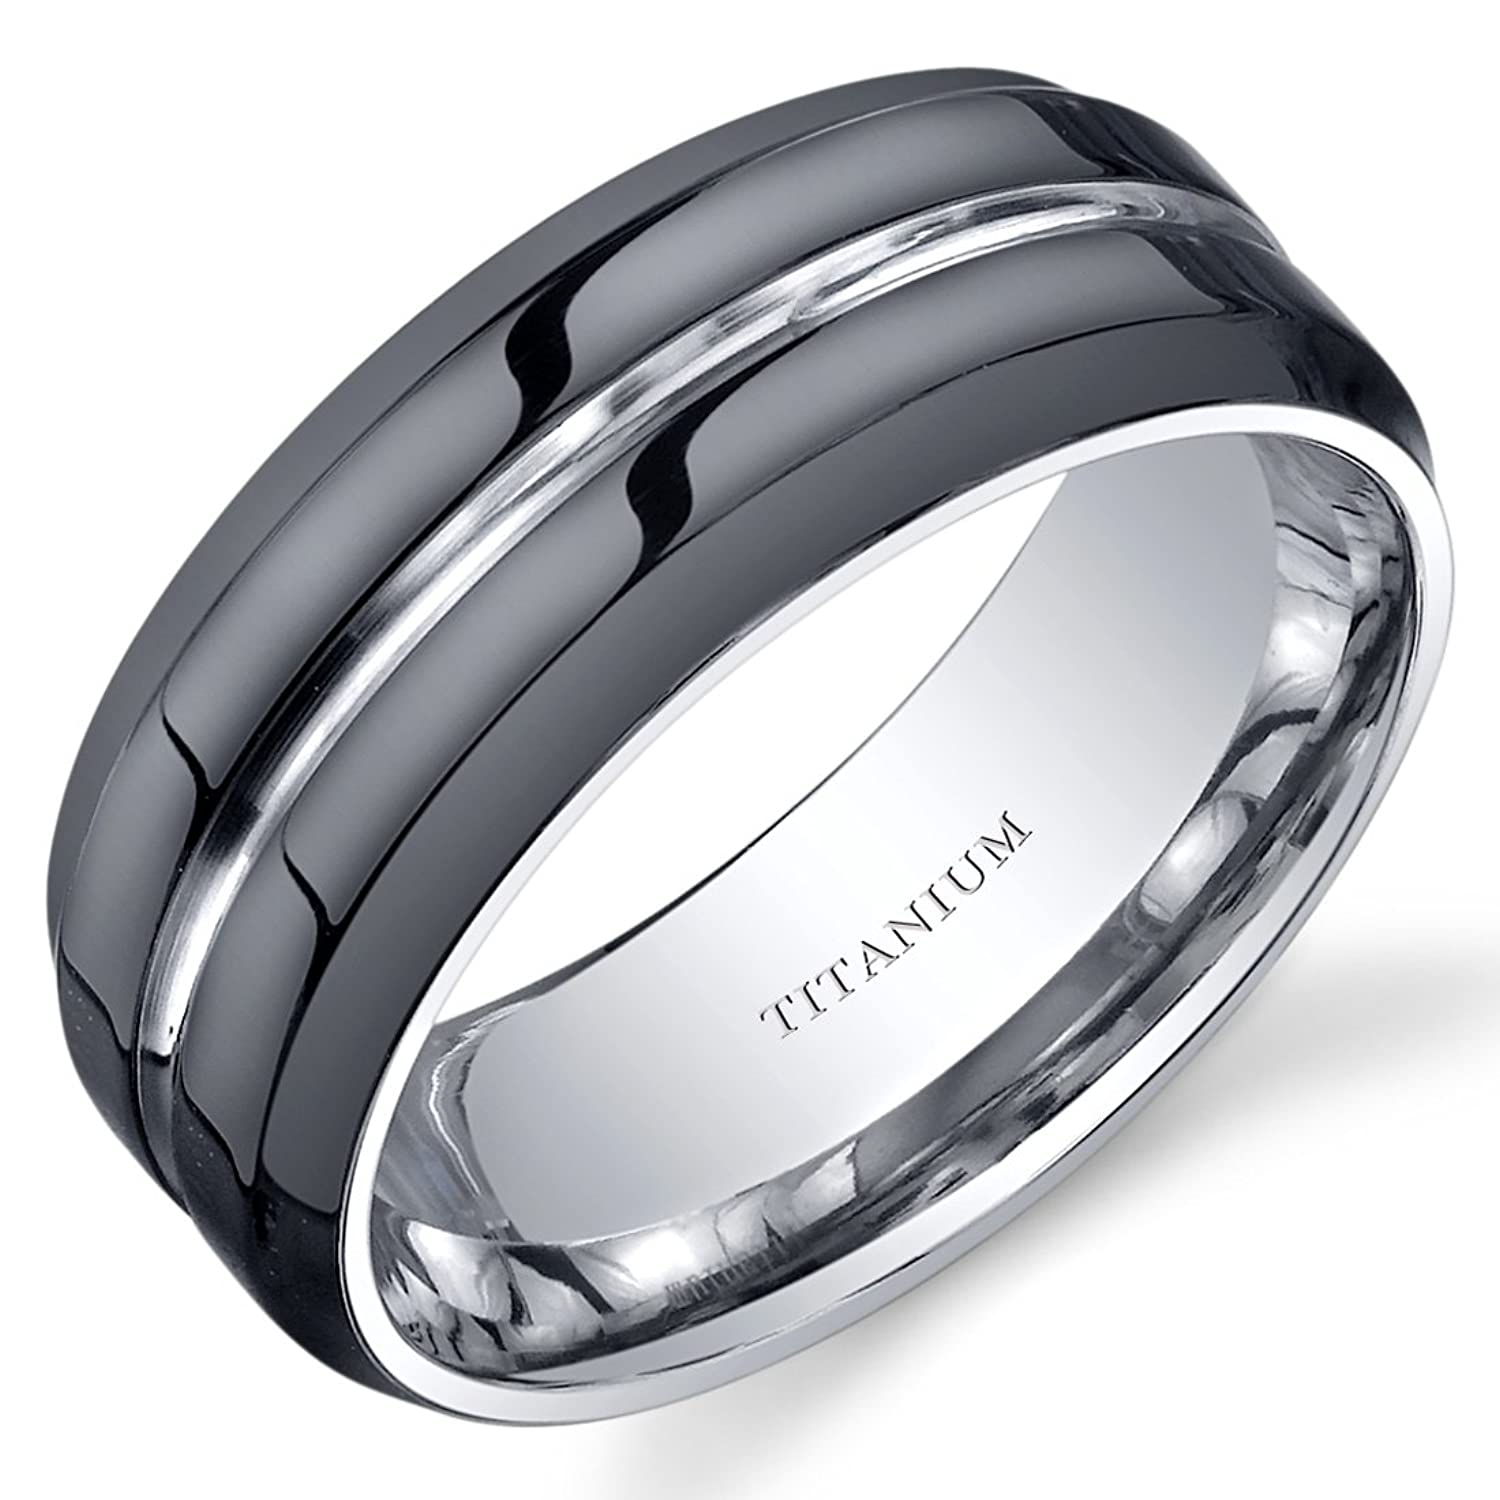 wedding band finish mens bands black ring newport tungsten carbide zoom hammer loading